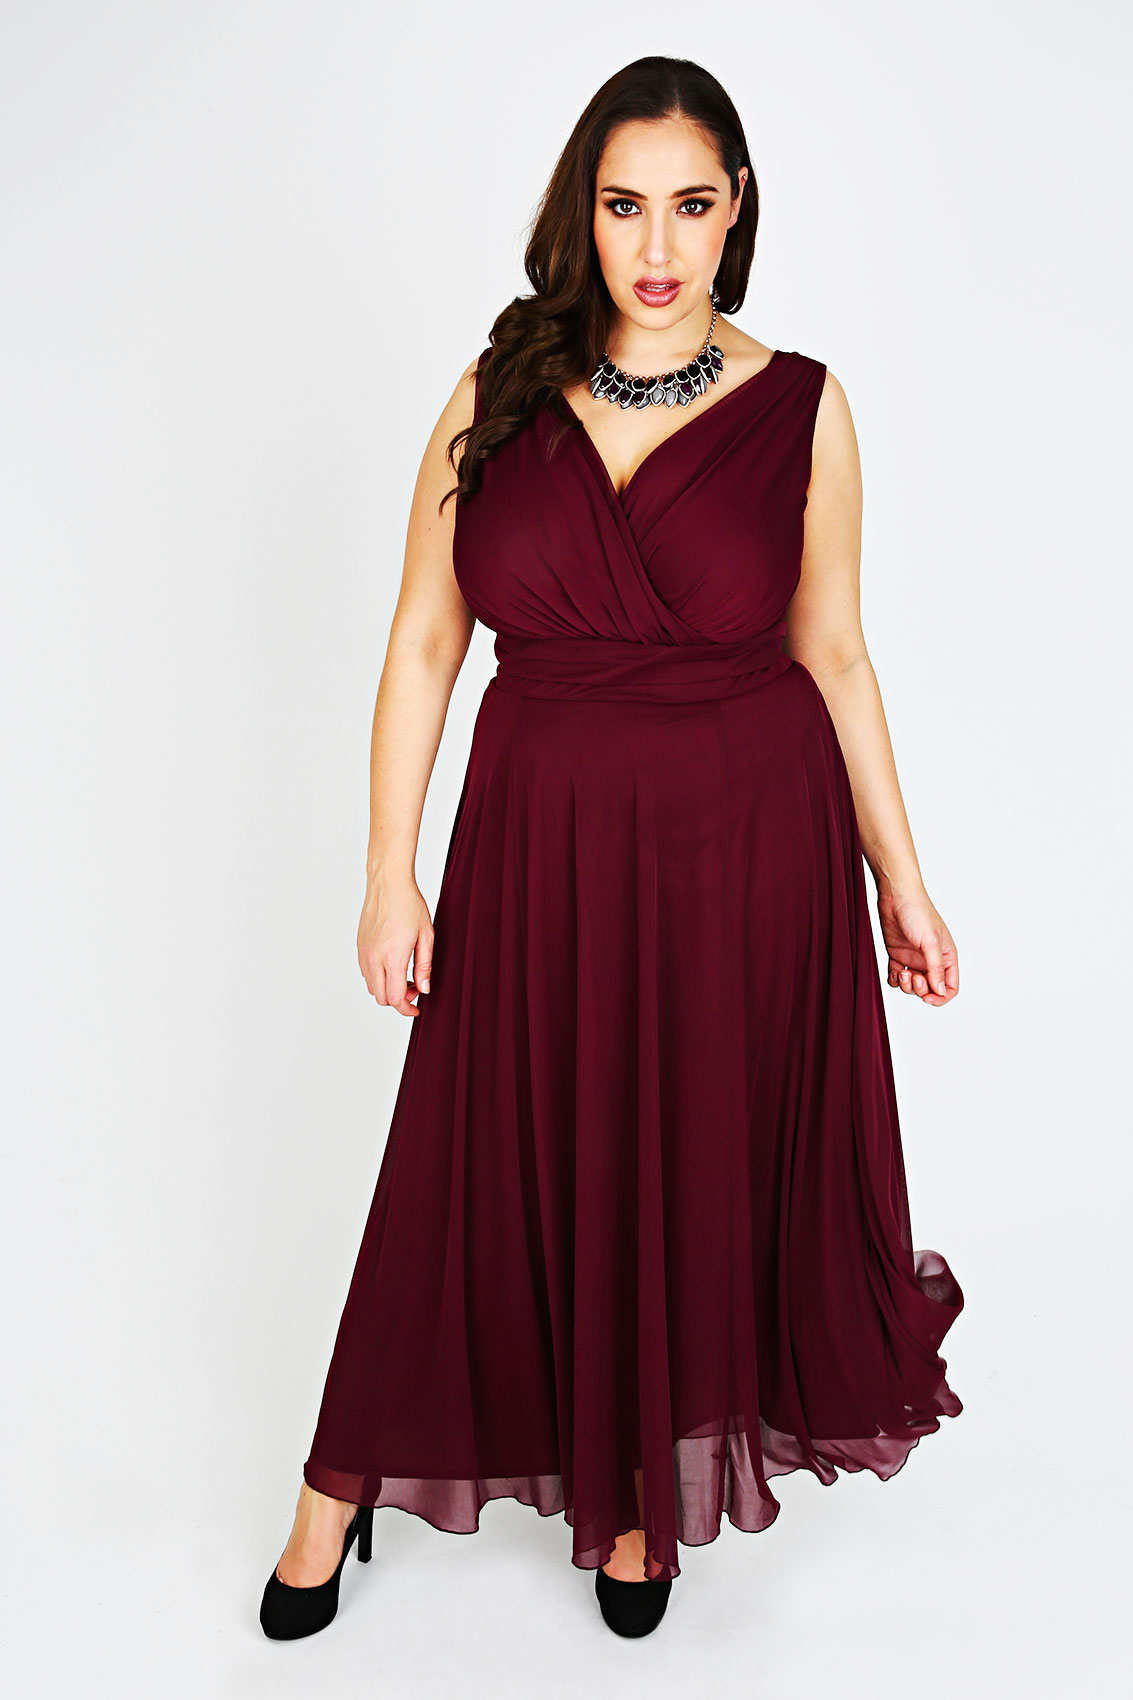 Scarlett jo cranberry chiffon maxi dress plus size 14 16 for Plus size wedding dresses size 32 and up